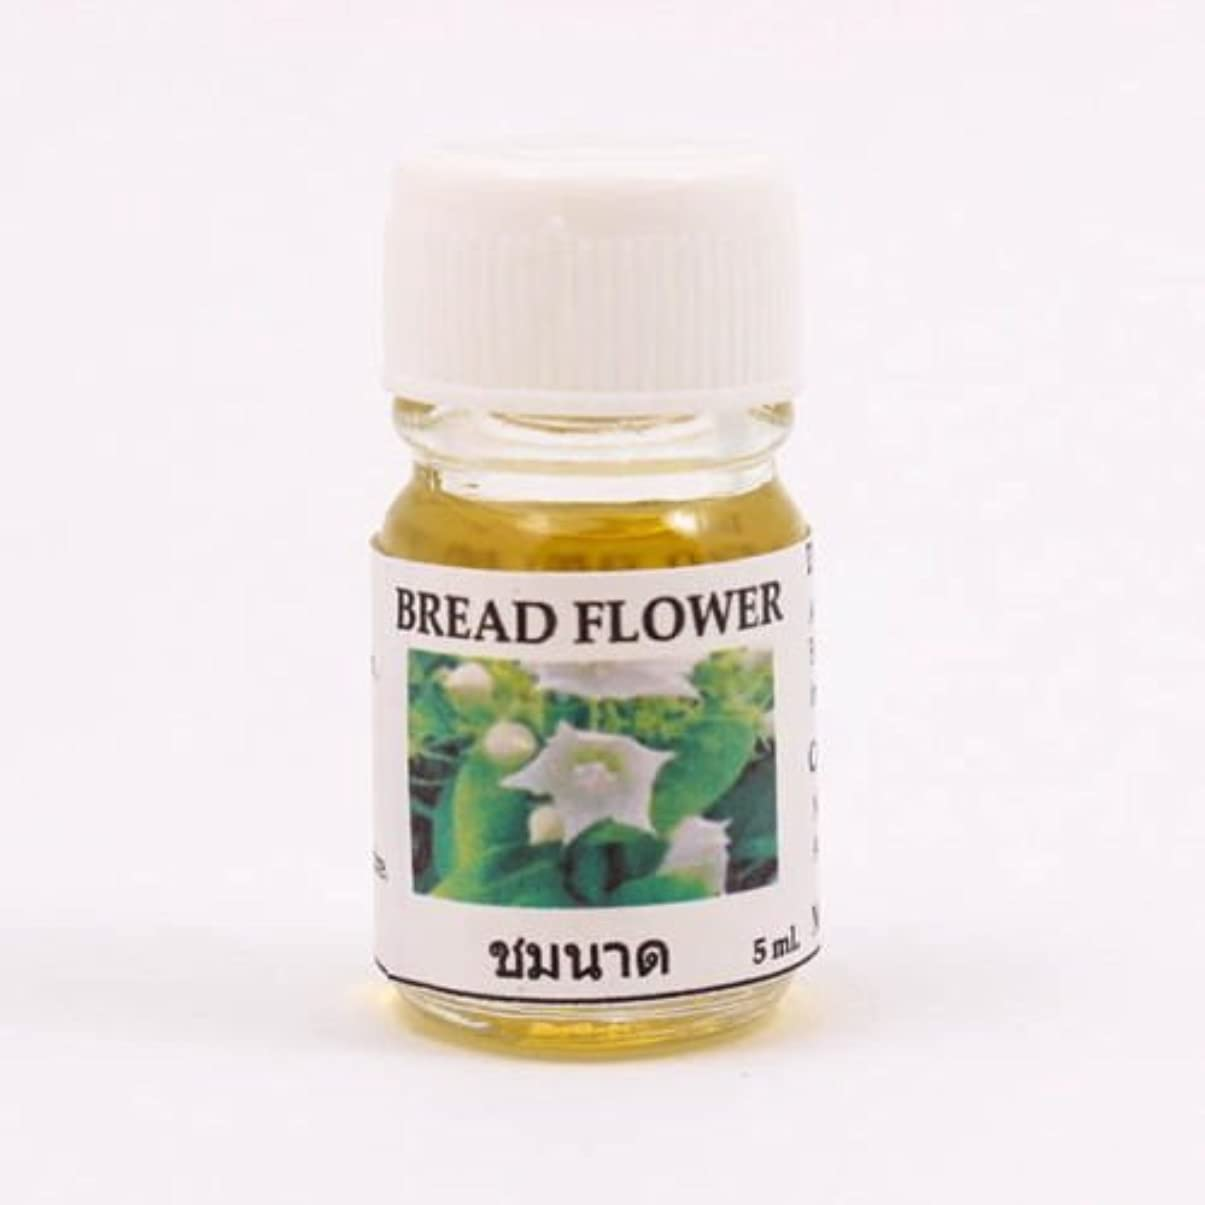 コンパニオンホステル無駄な6X Bread Flower Fragrance Essential Oil 5ML. (cc) Diffuser Burner Therapy